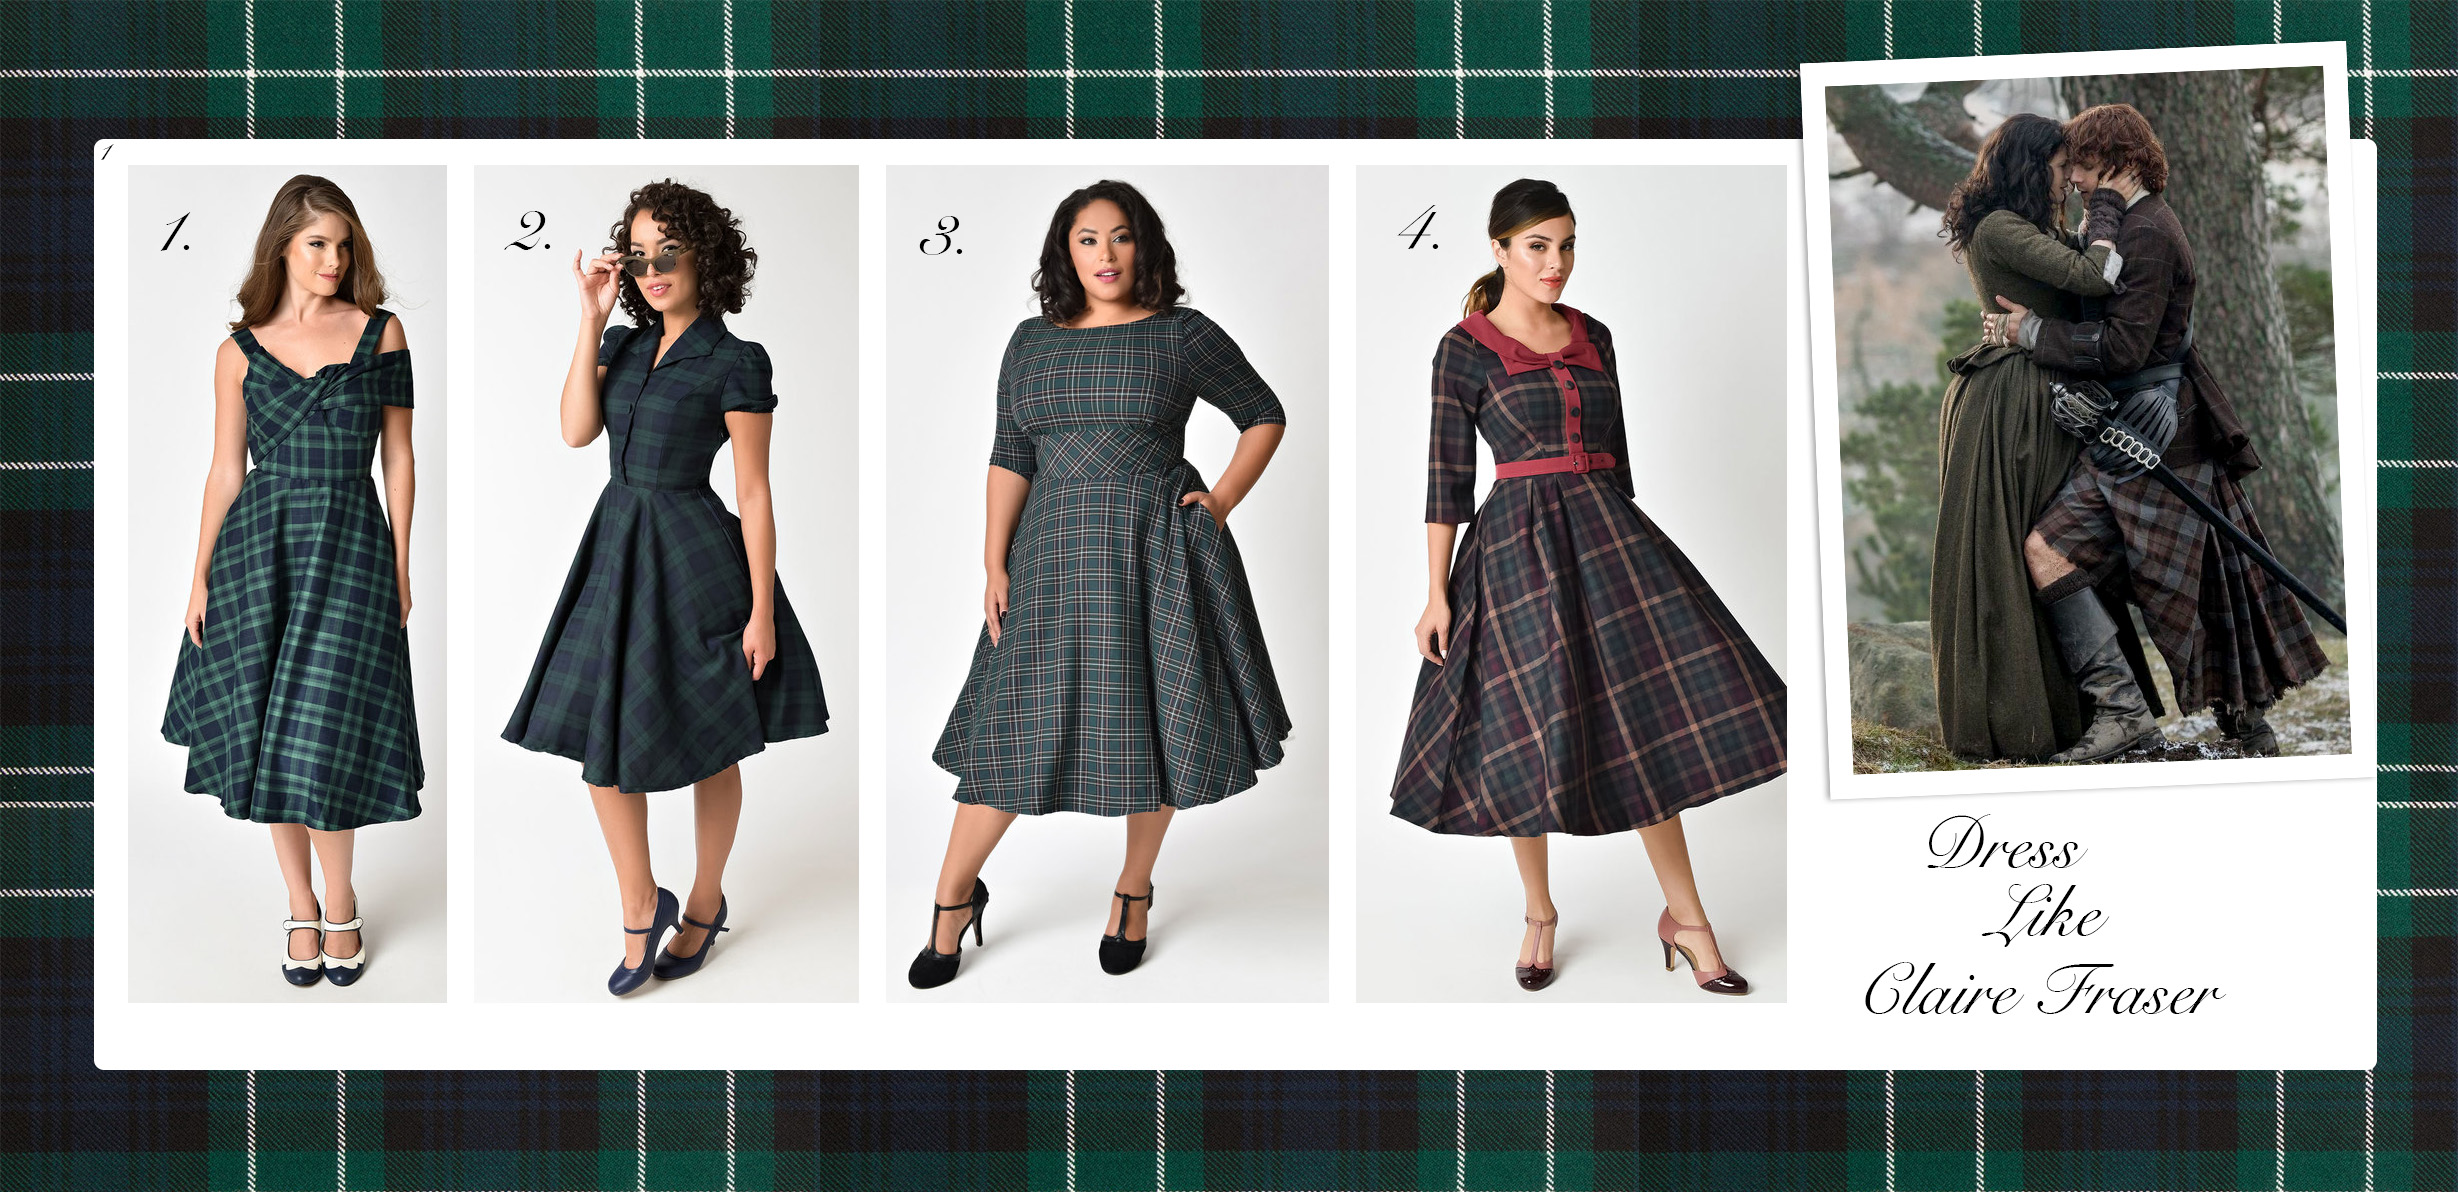 Dress Like Claire Fraser from Outlander.